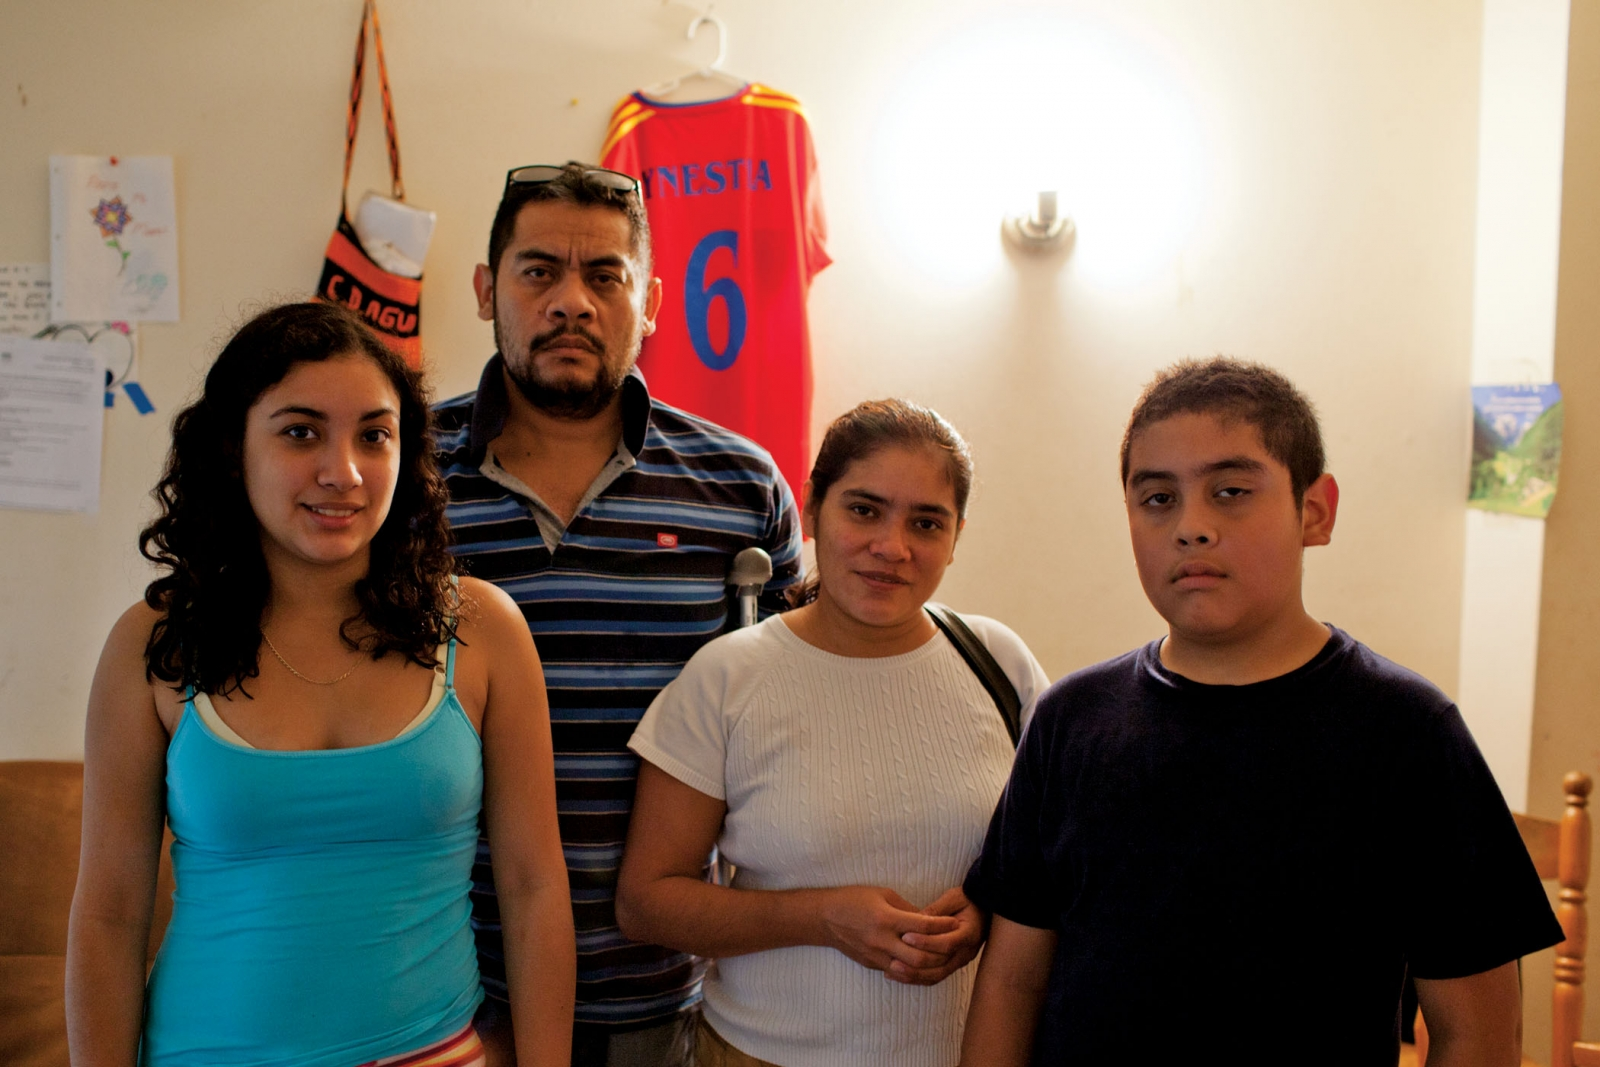 Henry Aleman, his wife, Ester Maria, and their two children, Sandra and Henry Jr., share a single bedroom in Takoma Park and use food stamps at Giant. Photo credit: Francis Tatem